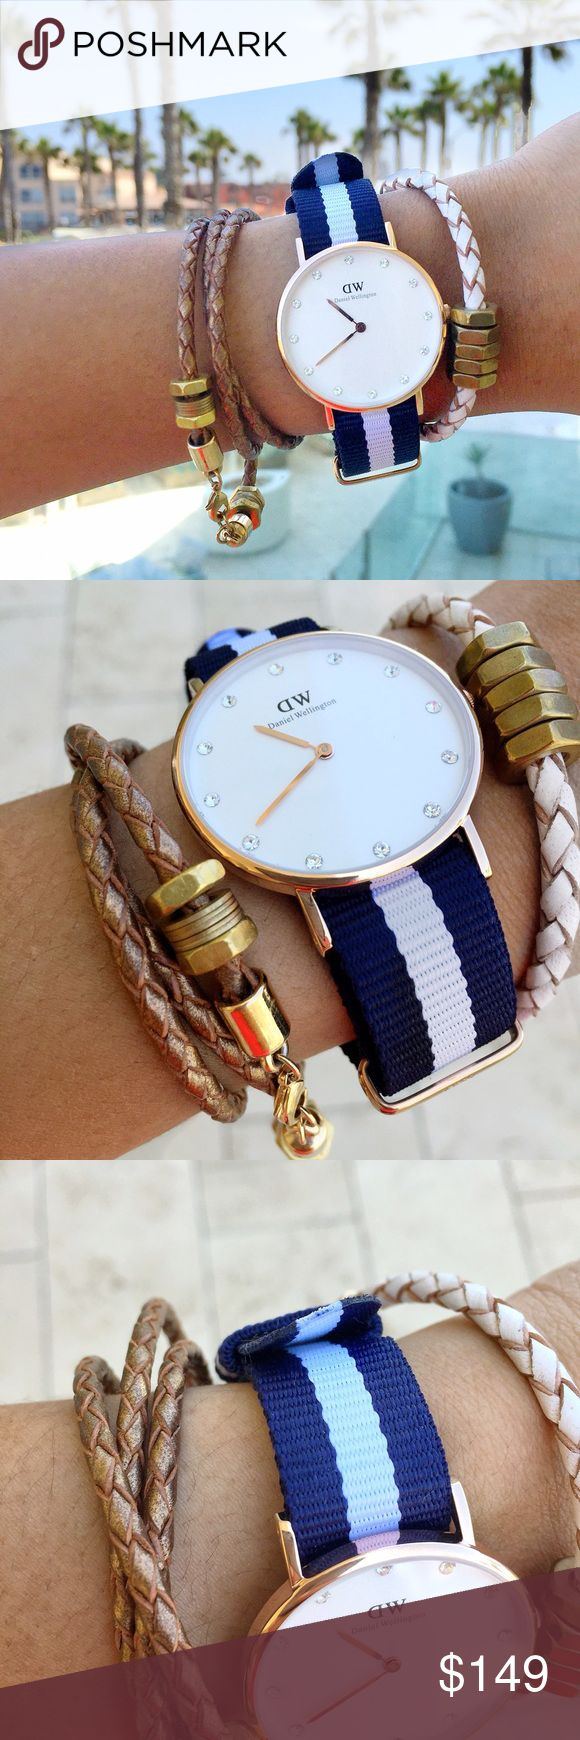 "BOGO SALE // Daniel Wellington Watch Blue and white nato strap with a slim case in rose gold, rose gold hands, Swarovski crystal index. Available on danielwellington site ""Classy Glasgow 34MM"" site for $175. In excellent like new condition. See photos. Will ship watch only with box. Bracelets for sale separately in my closet. Add to Bundle items to save!   Size: 34mm Case thickness: 6mm Dial color: Eggshell White Movement: Japanese Quartz Strap width: 17mm Strap: Blue/White Nato Strap…"